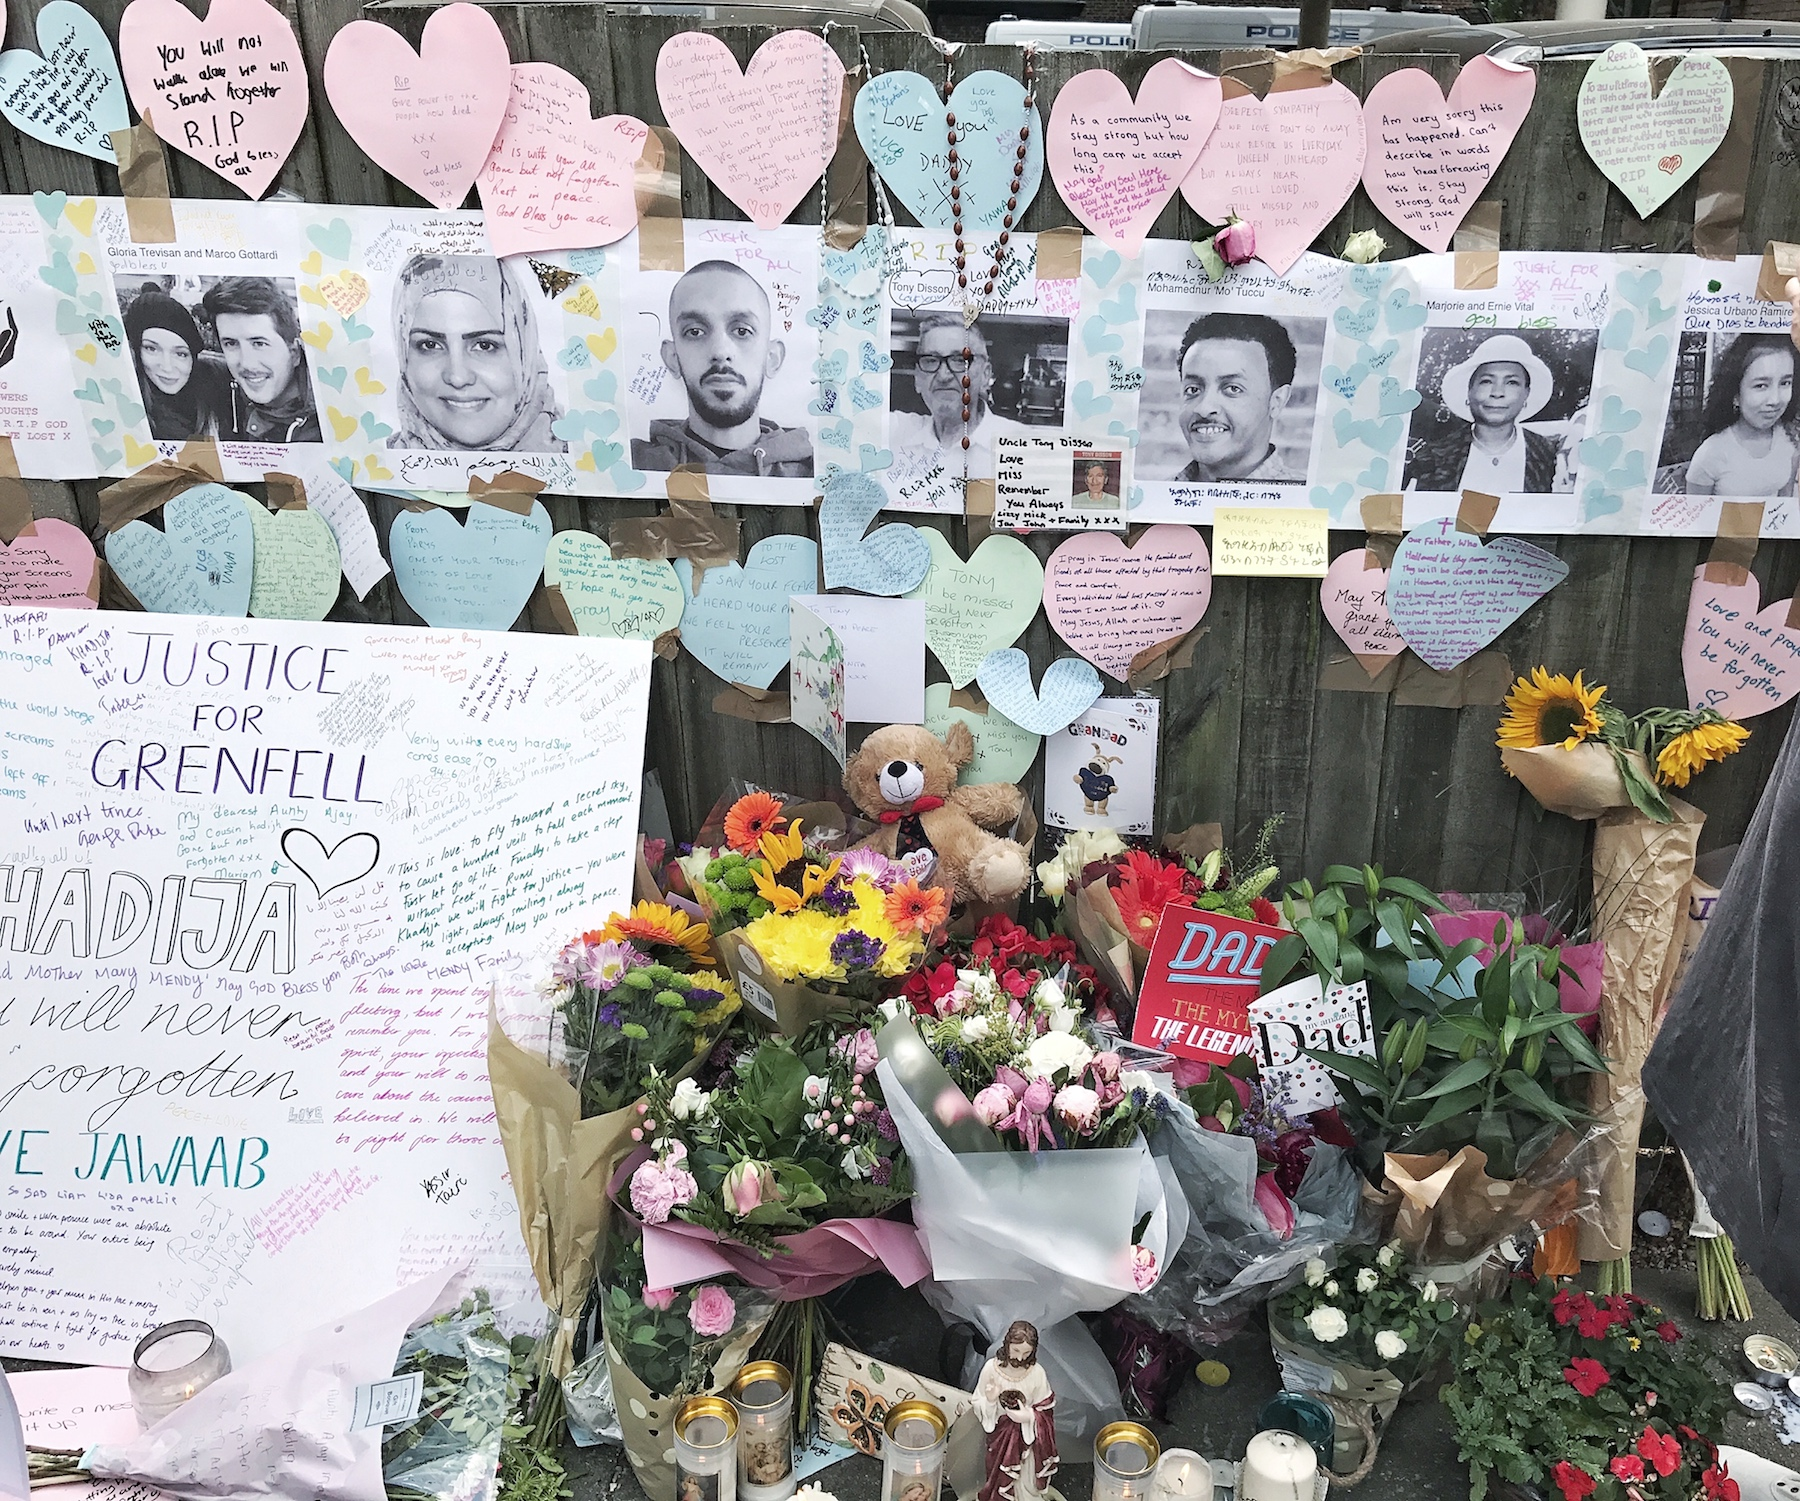 Photos of dead or missing people line the walls of the Grenfell neighbourhood after the devastating fire.